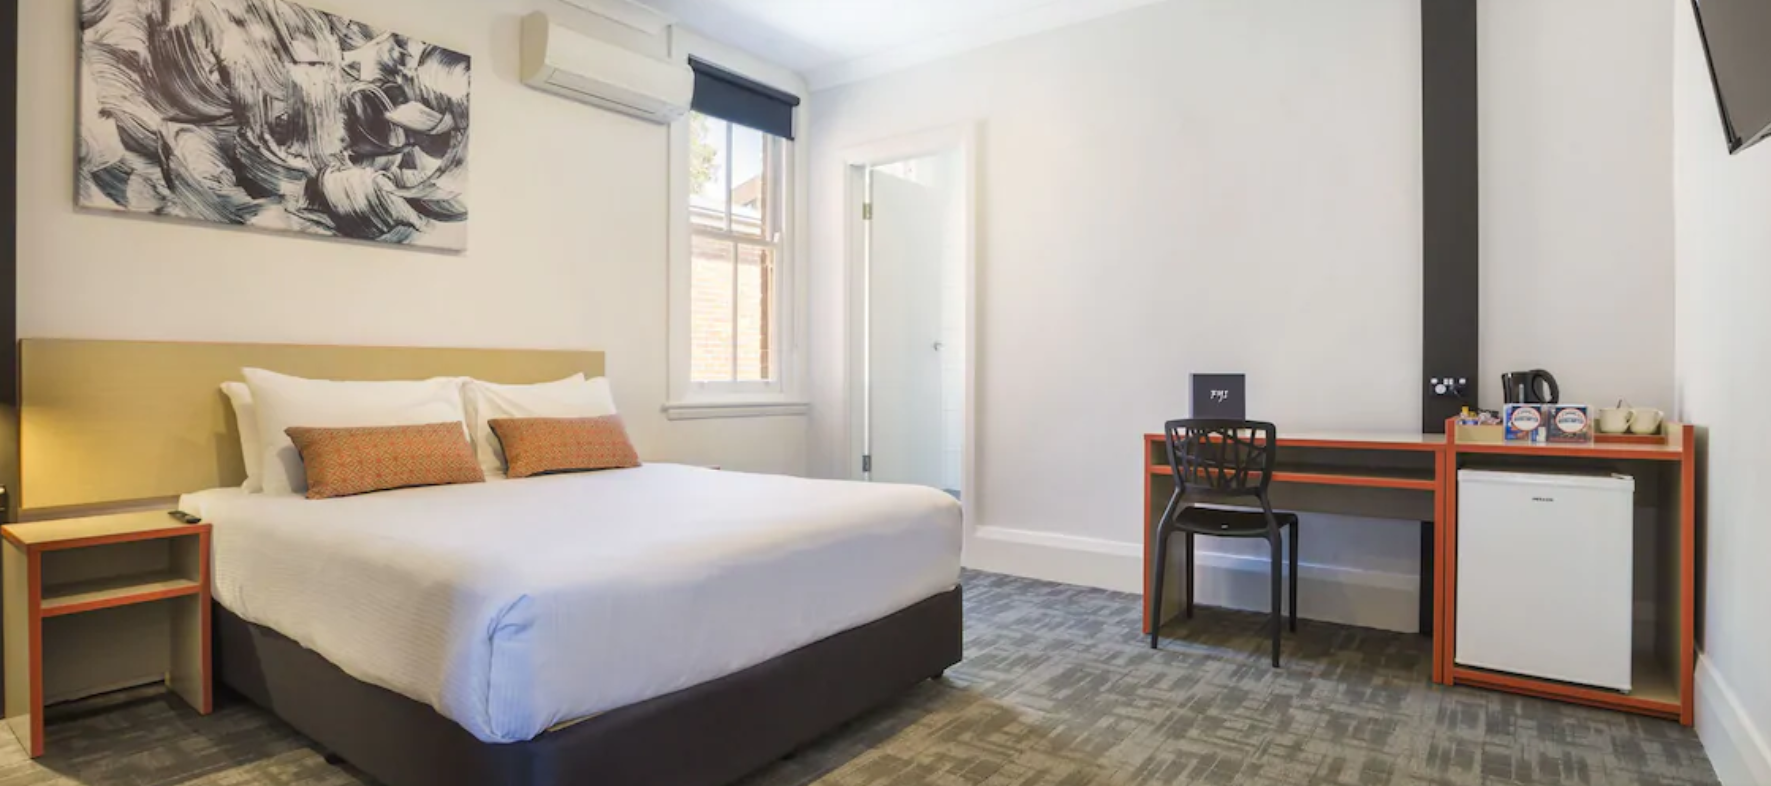 Book hotels under $99 a night from Wotif